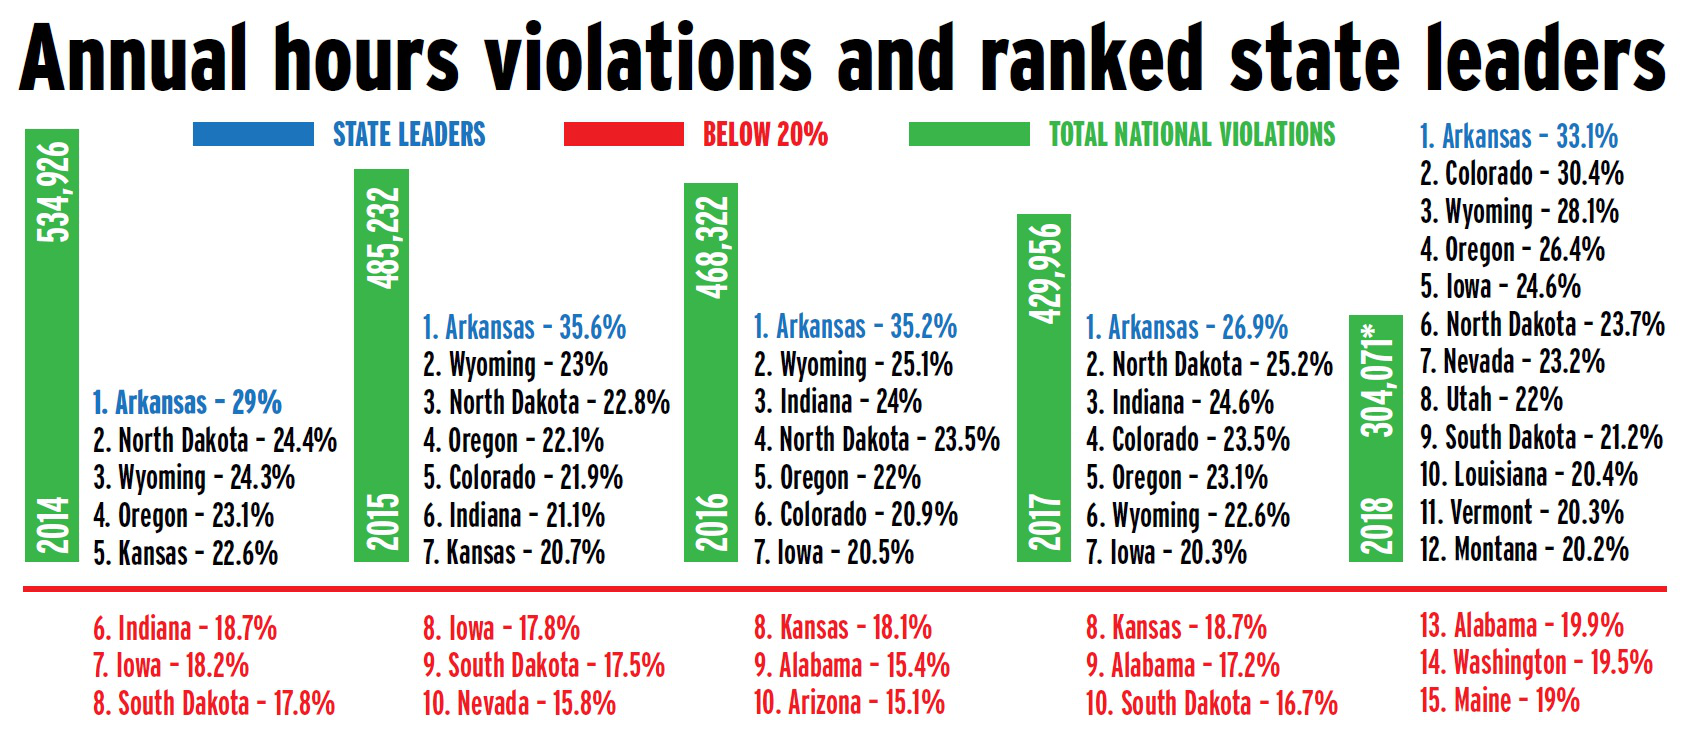 Annual hours violations and ranked by state leaders